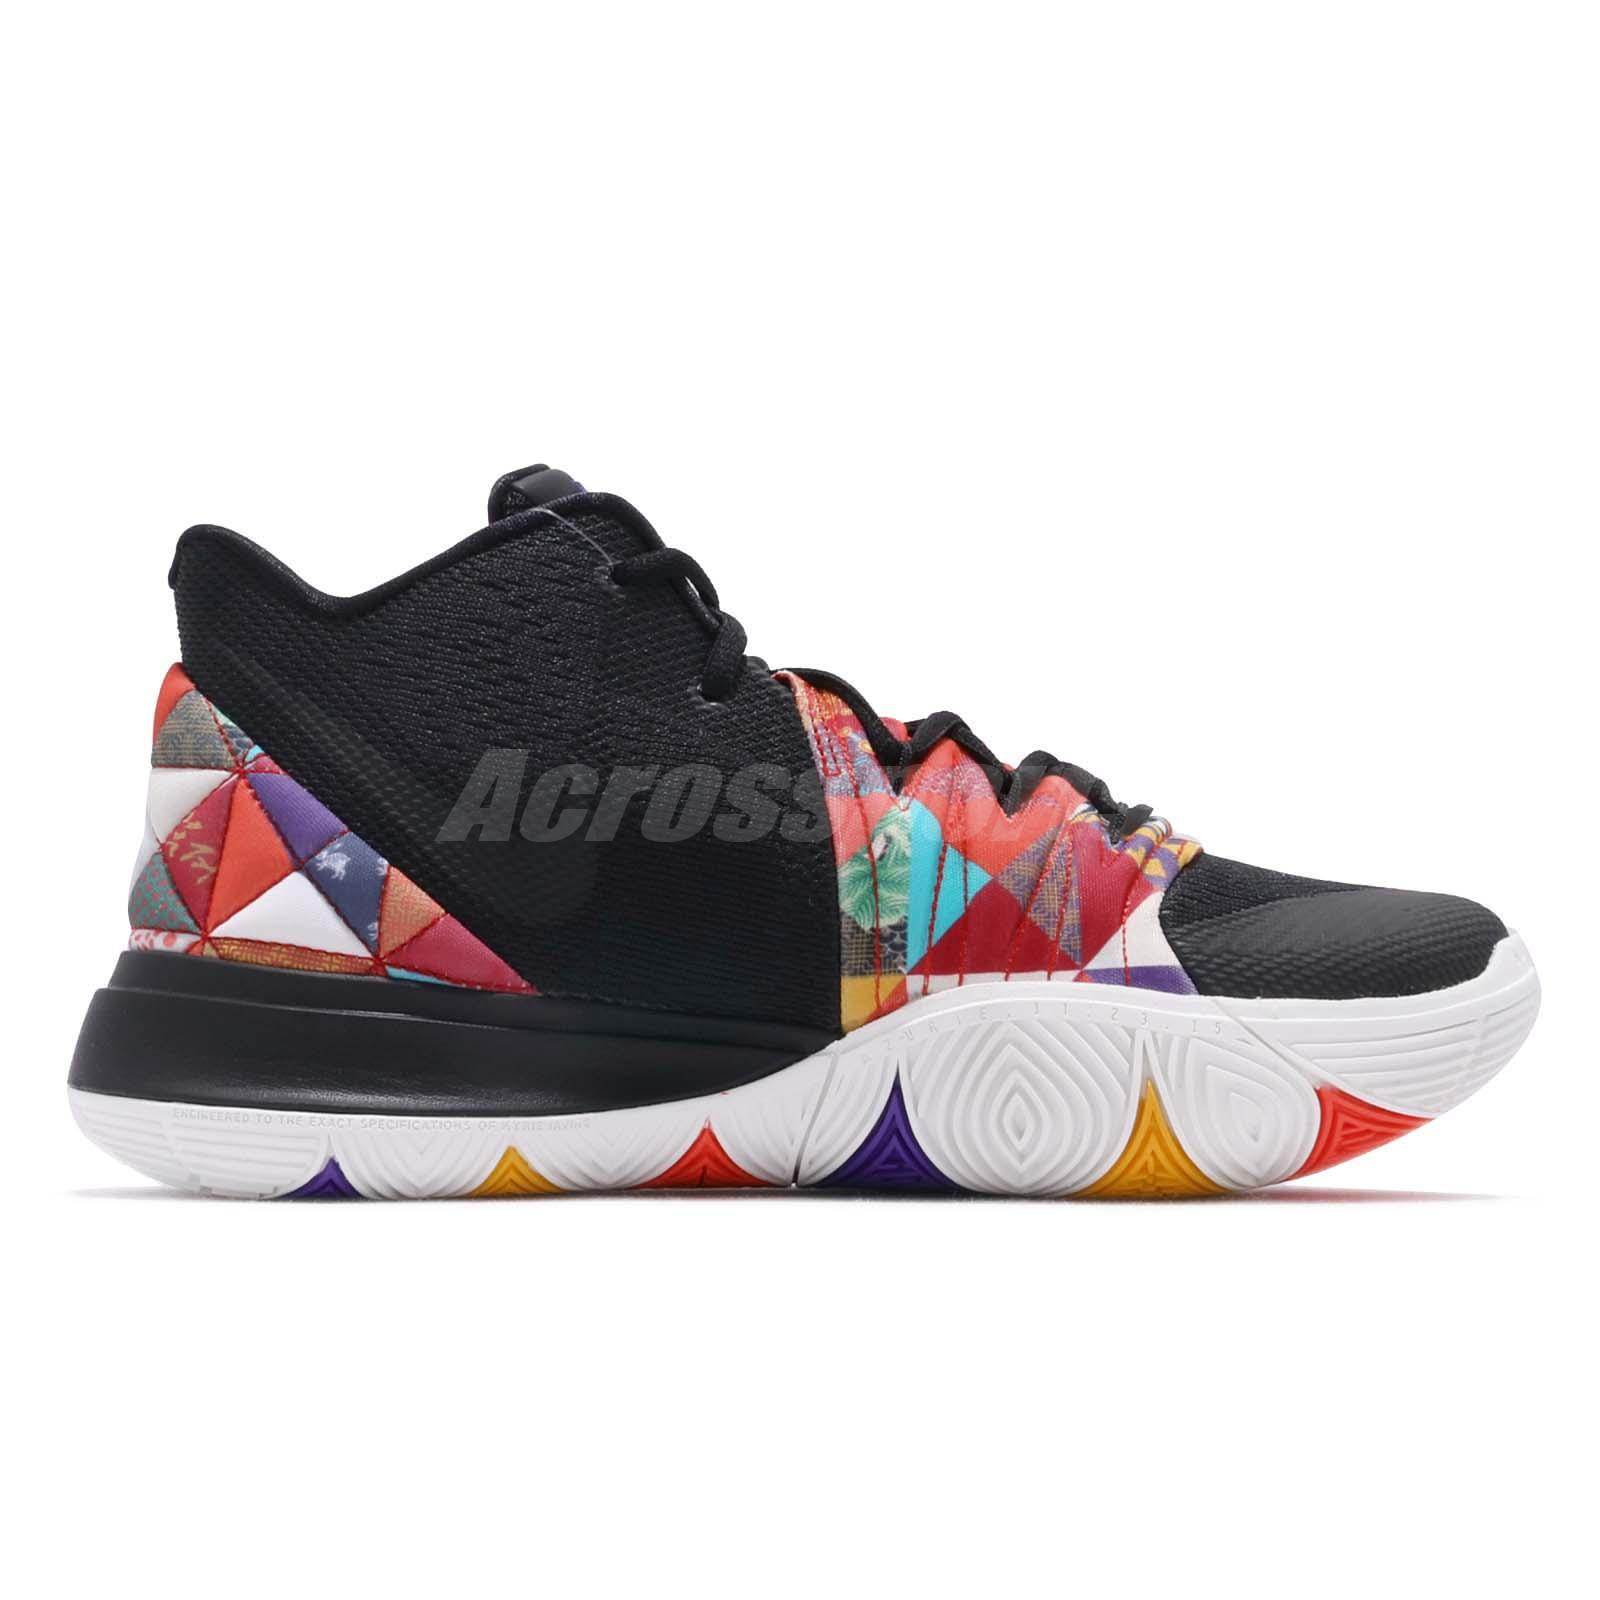 735a3f3e83e323 Nike Kyrie 5 EP V Irving CNY Chinese New Year Men Shoes Sneakers ...